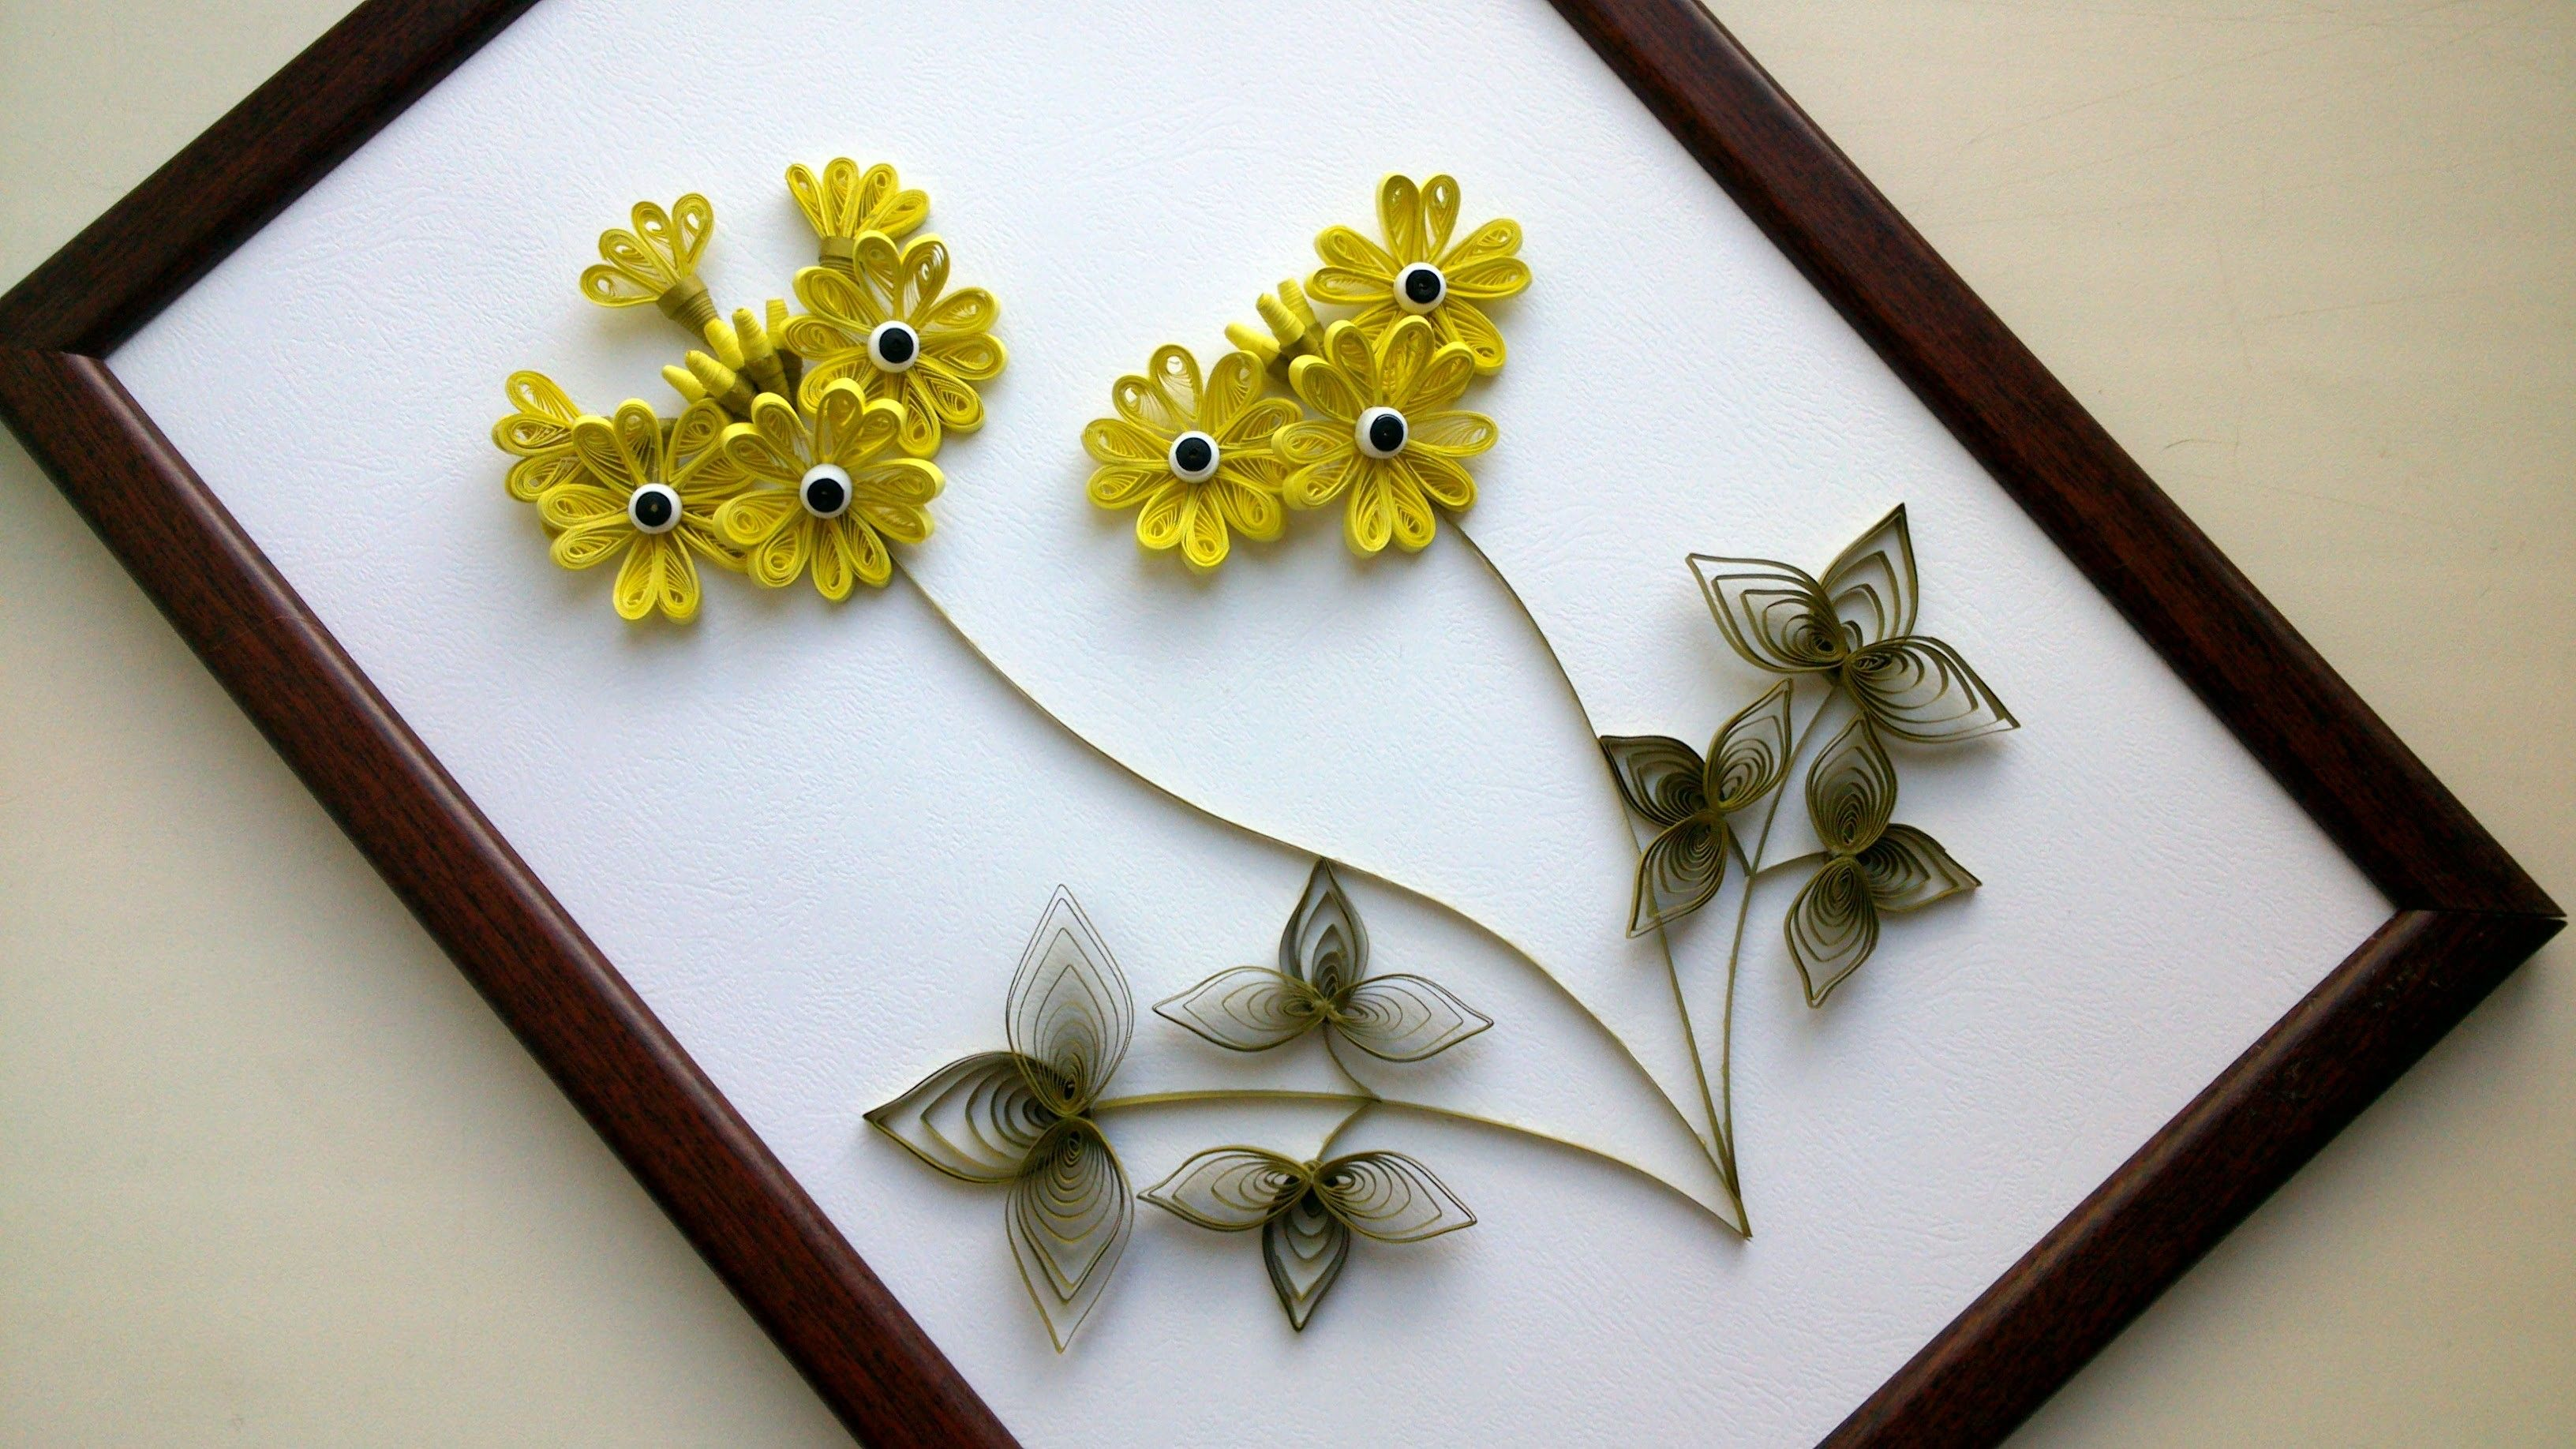 Diy Home Decor With Paper Quilling Art Diy Room Decor With